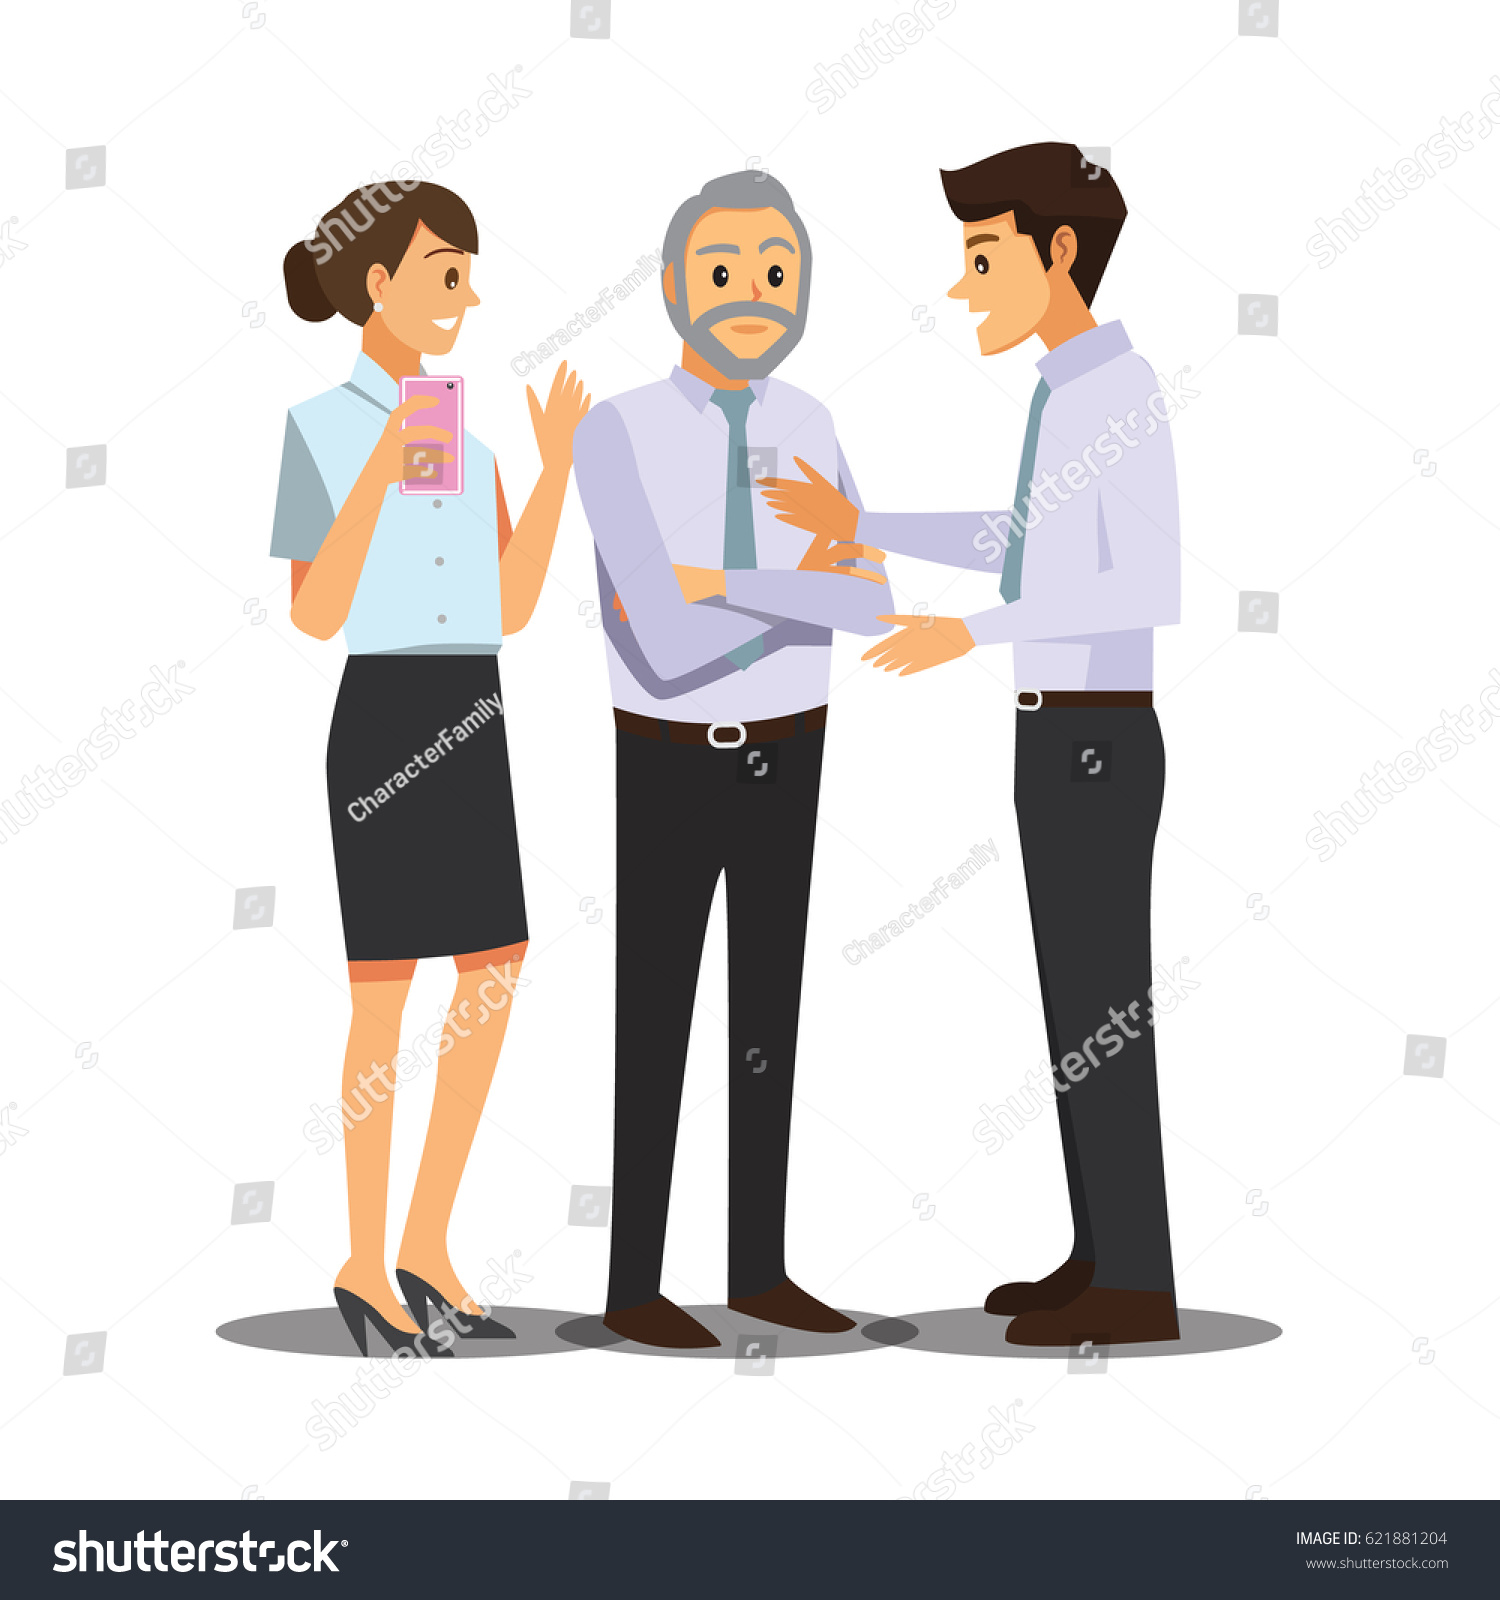 Business team cartoon characters cartoon vector cartoondealer com - Business And Office Concept Business People Consulting Vector Illustration Cartoon Character